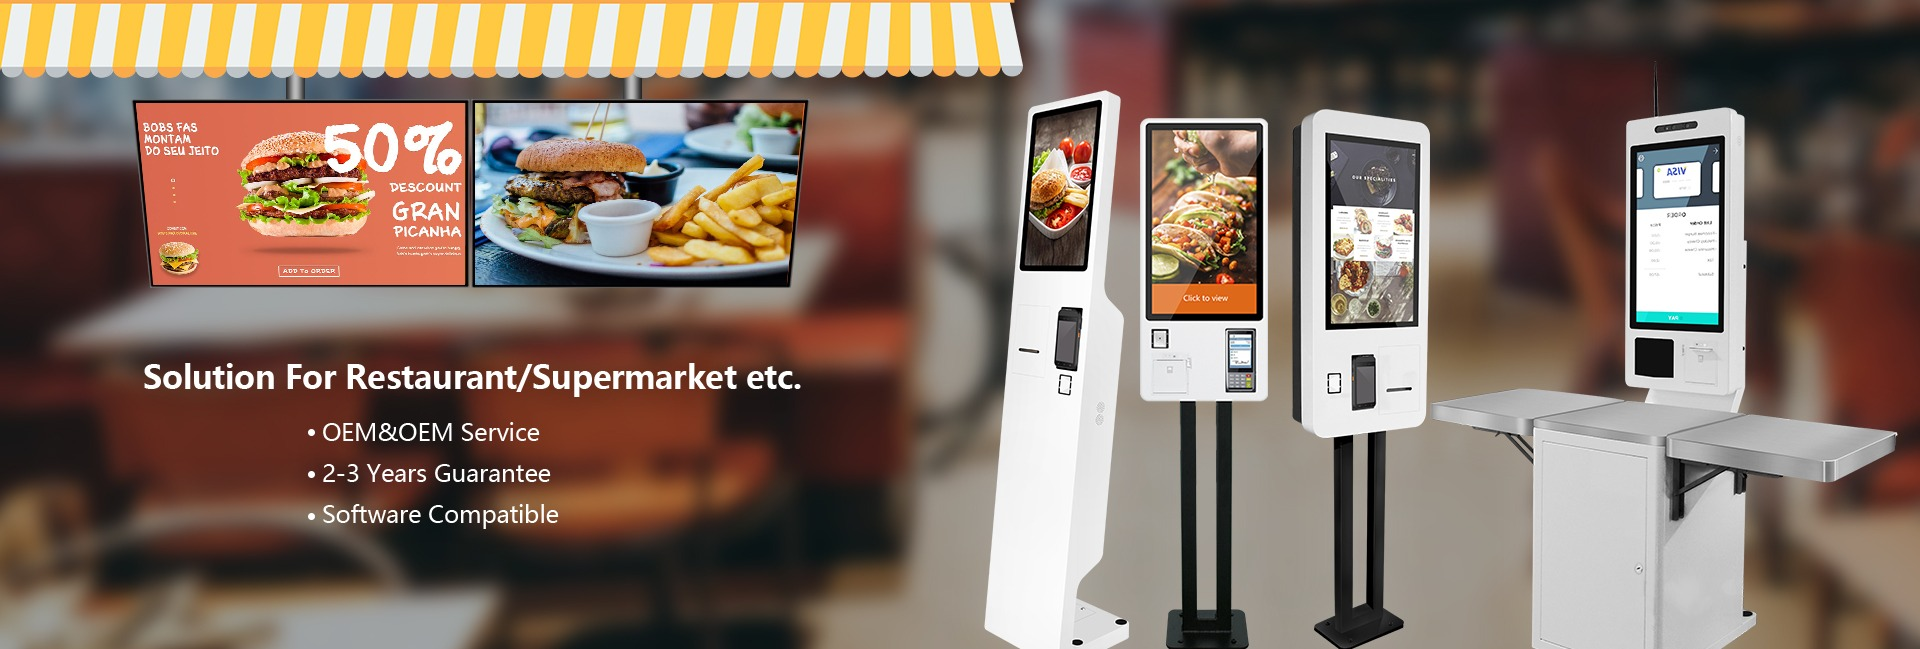 online ordering app for takeaways Digital Screens and self order kiosk